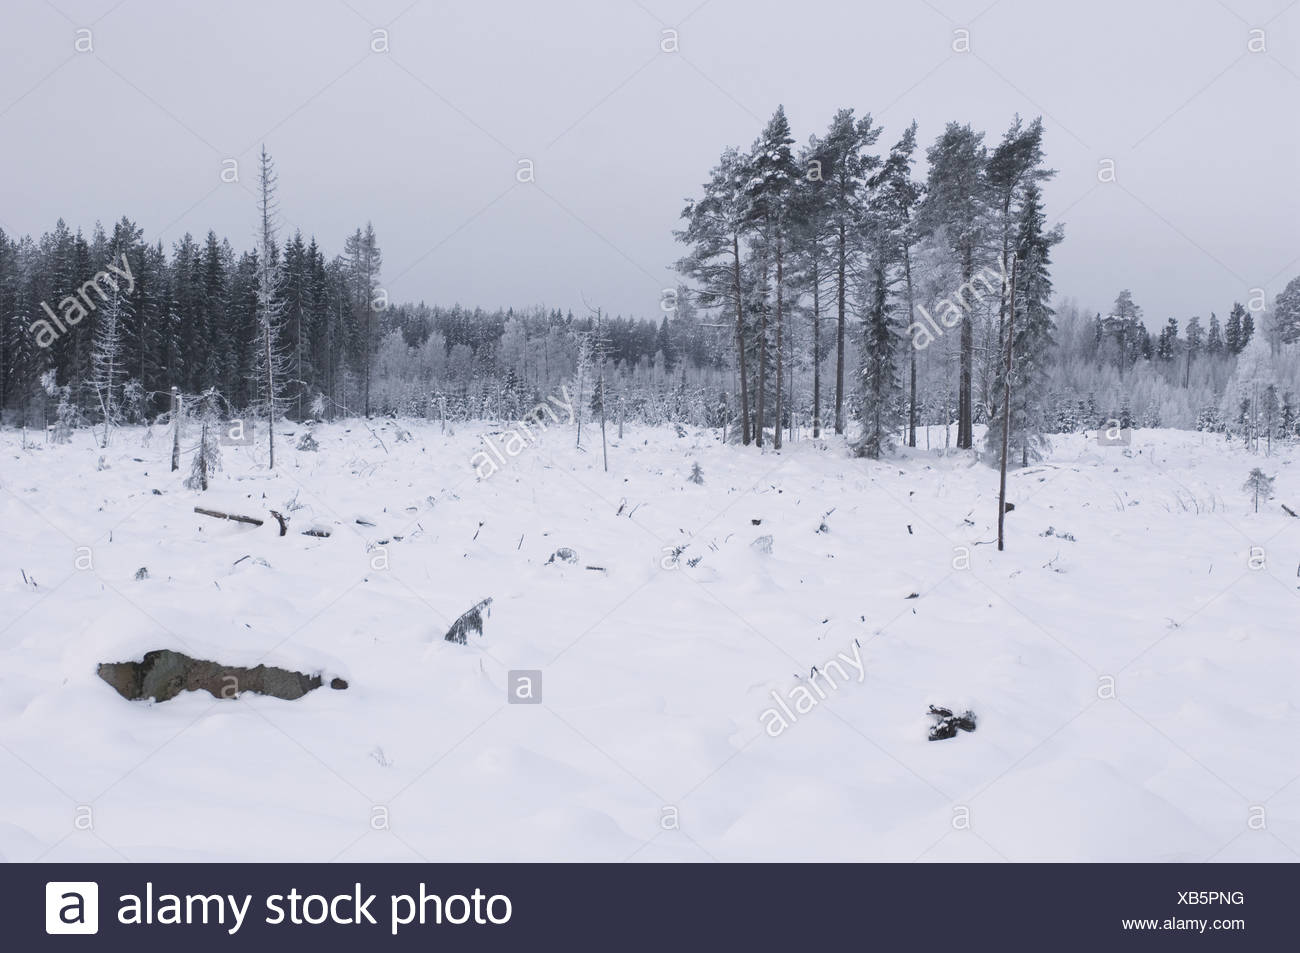 Felled and cleared coniferous forest in snow, Uppsala, Sweden, winter - Stock Image